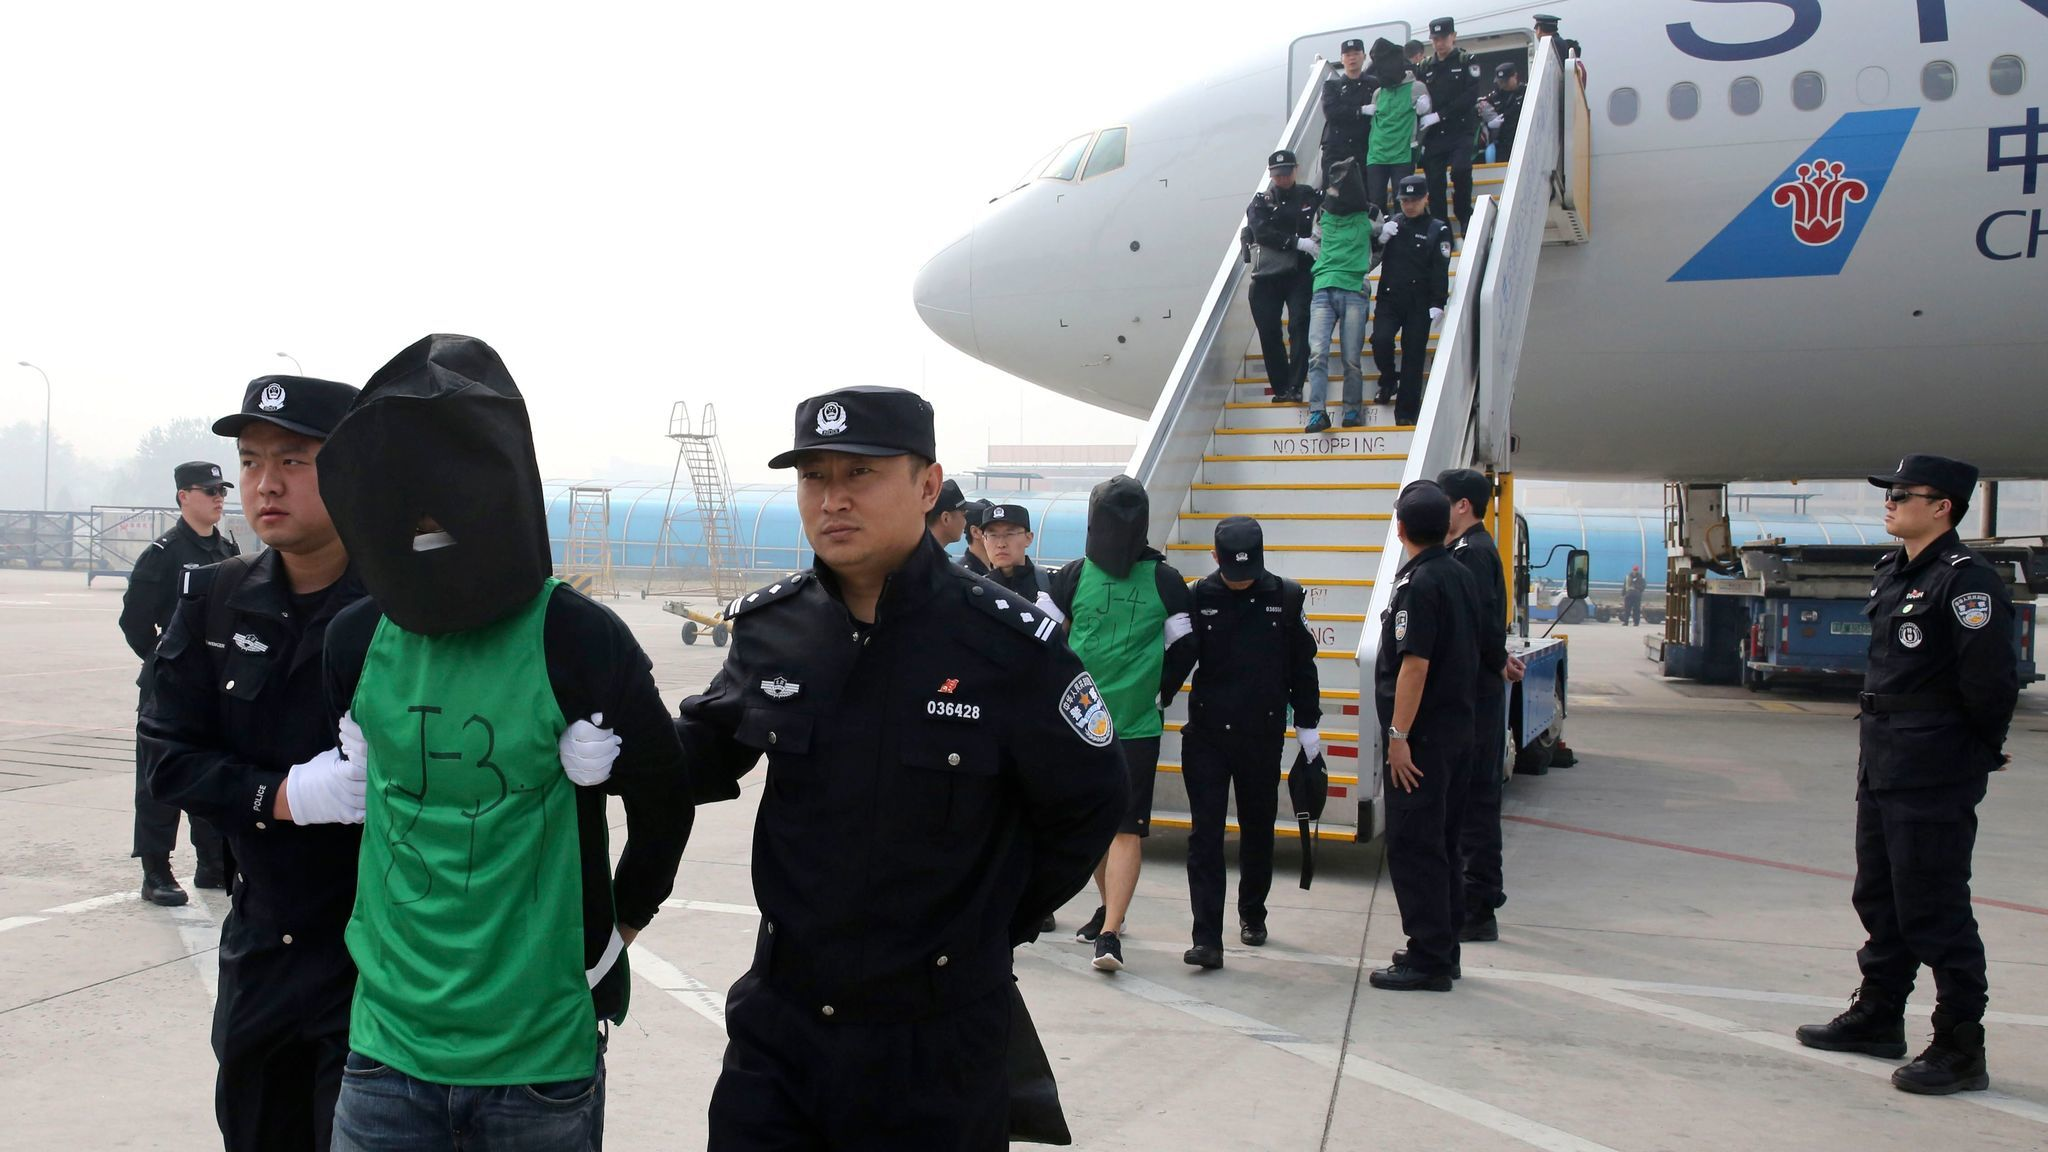 In this photo released by Xinhua News Agency, Chinese suspects involved in wire fraud are escorted off a plane after arriving at the Beijing Capital International Airport on April 13, 2016.